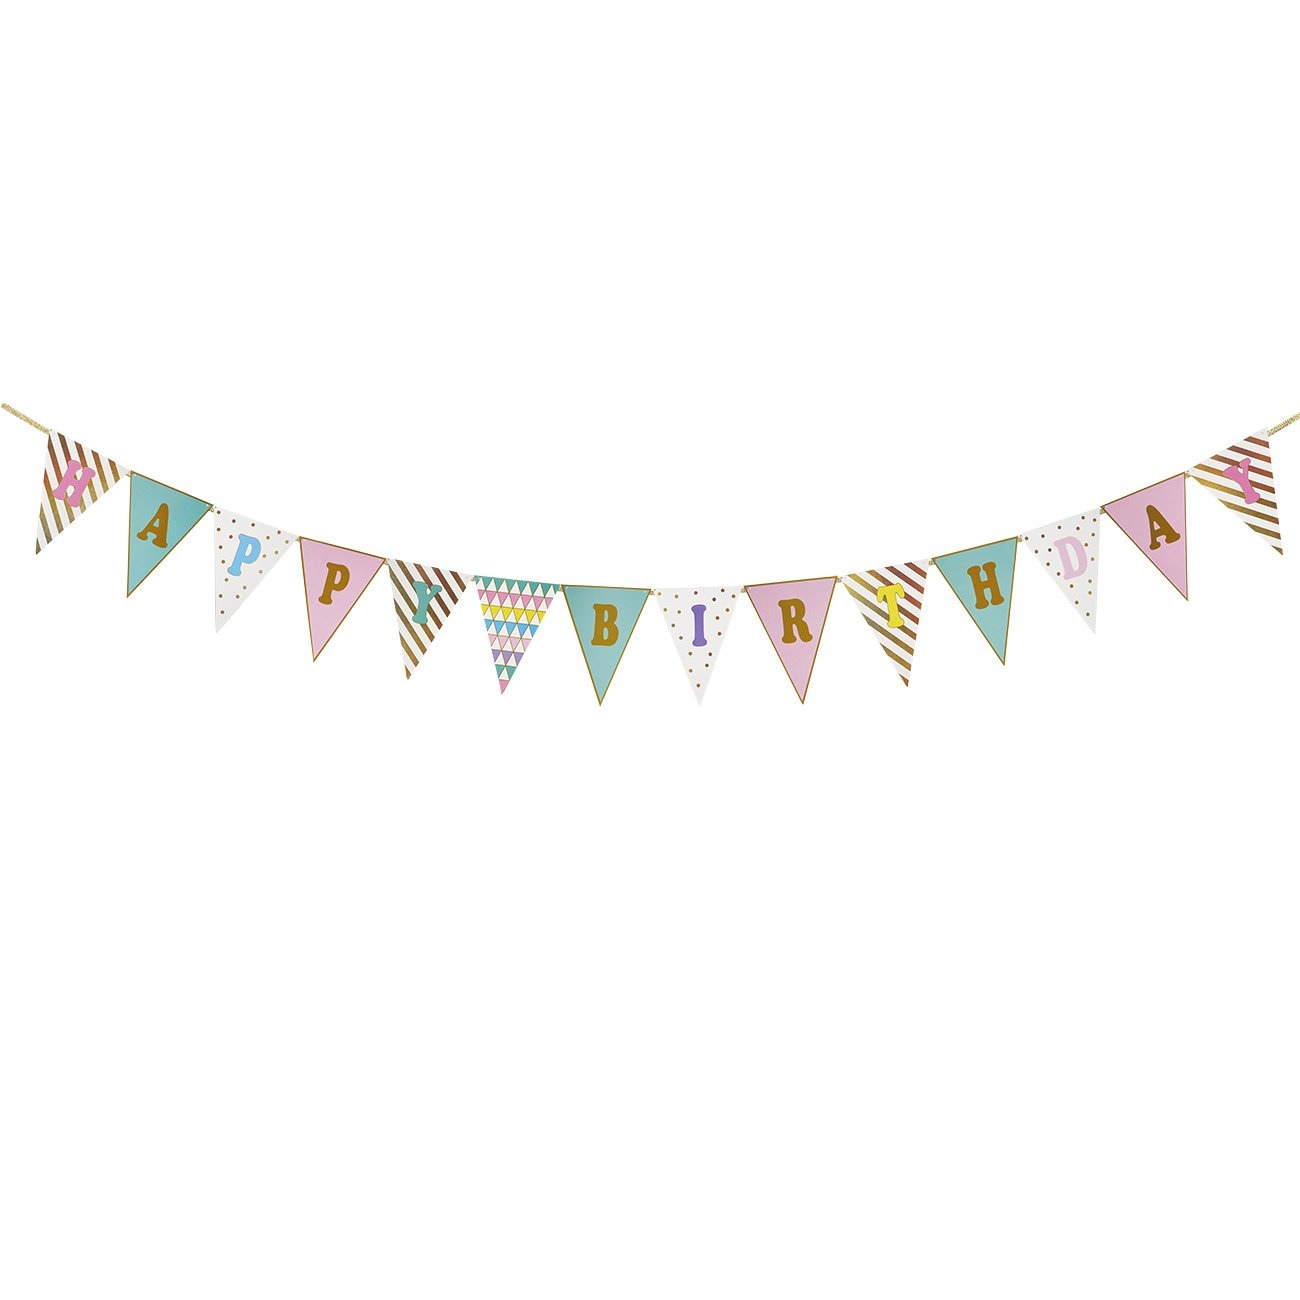 12.6 Feet Long Birthday Party Supplies for Kids Triangle Garland Decorations Pennant Banner Flags Birthday Party Banner Bunting Flags Multi Colors and Patterns